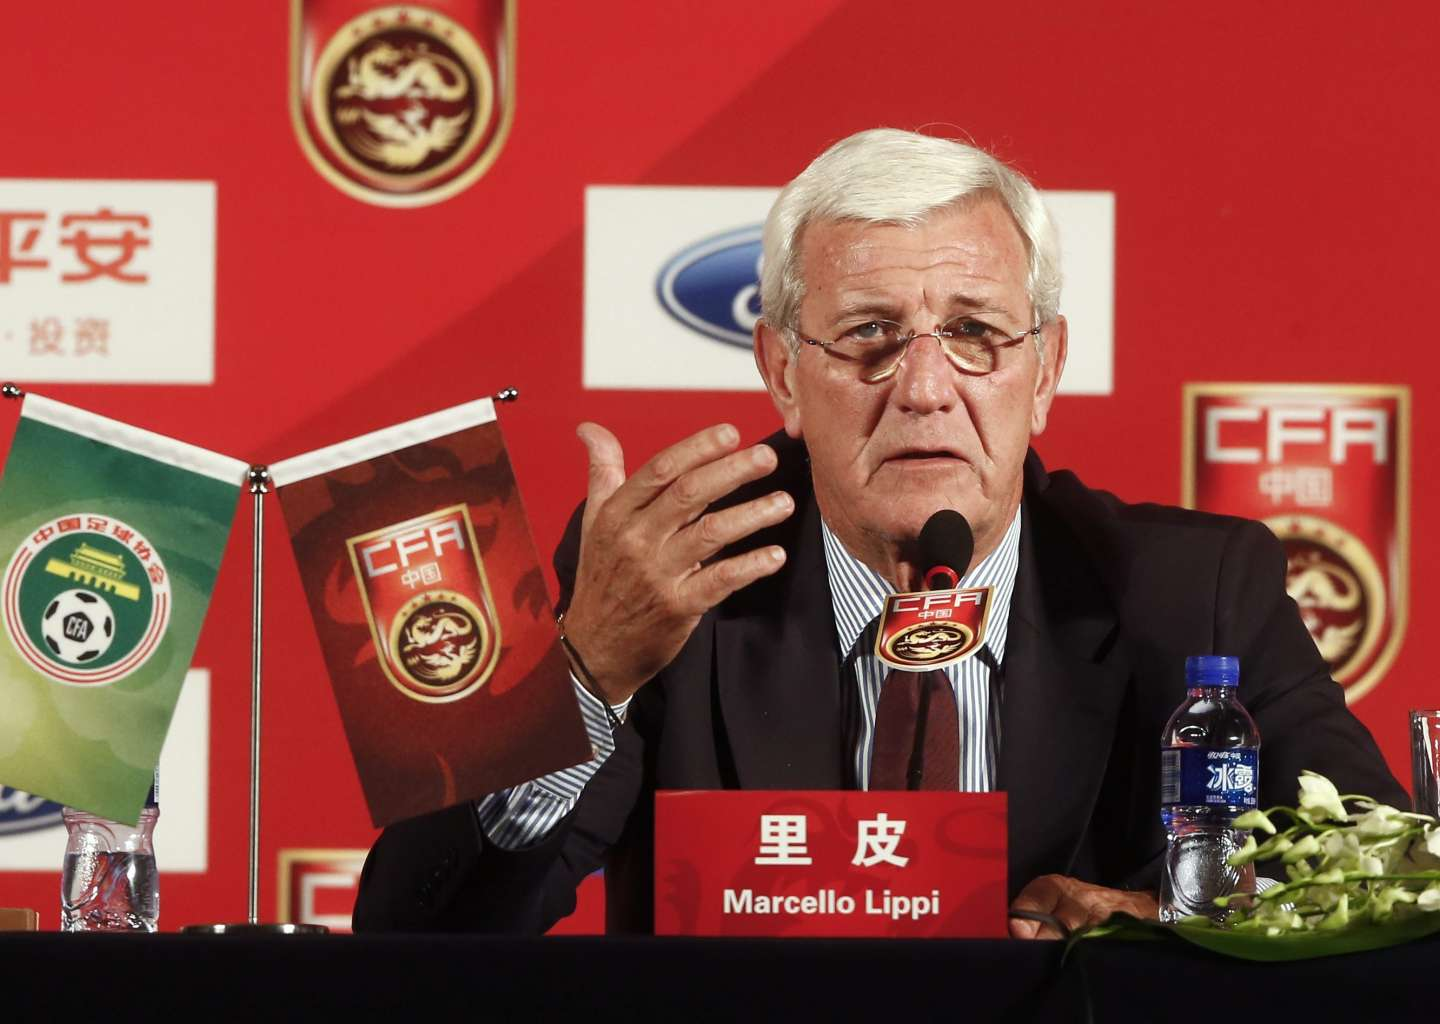 Marcello Lippi Press Conference